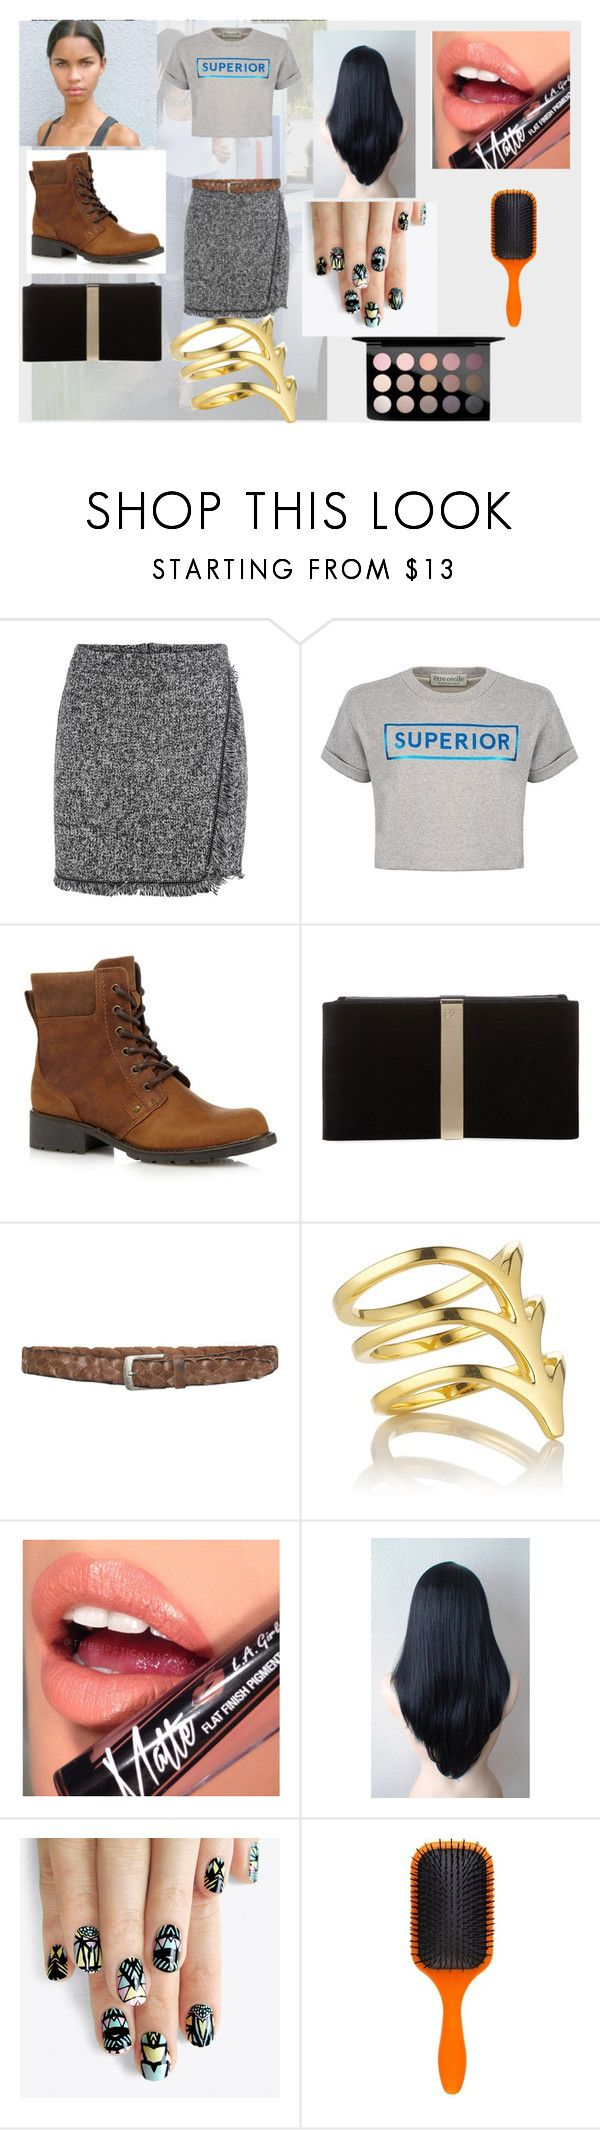 """""""all those long passages"""" by evacristelo ❤ liked on Polyvore featuring 7 For All Mankind, Être Cécile, Clarks, Roger Vivier, Smith/Grey, Fiebiger, alfa.K, Denman and MAC Cosmetics"""